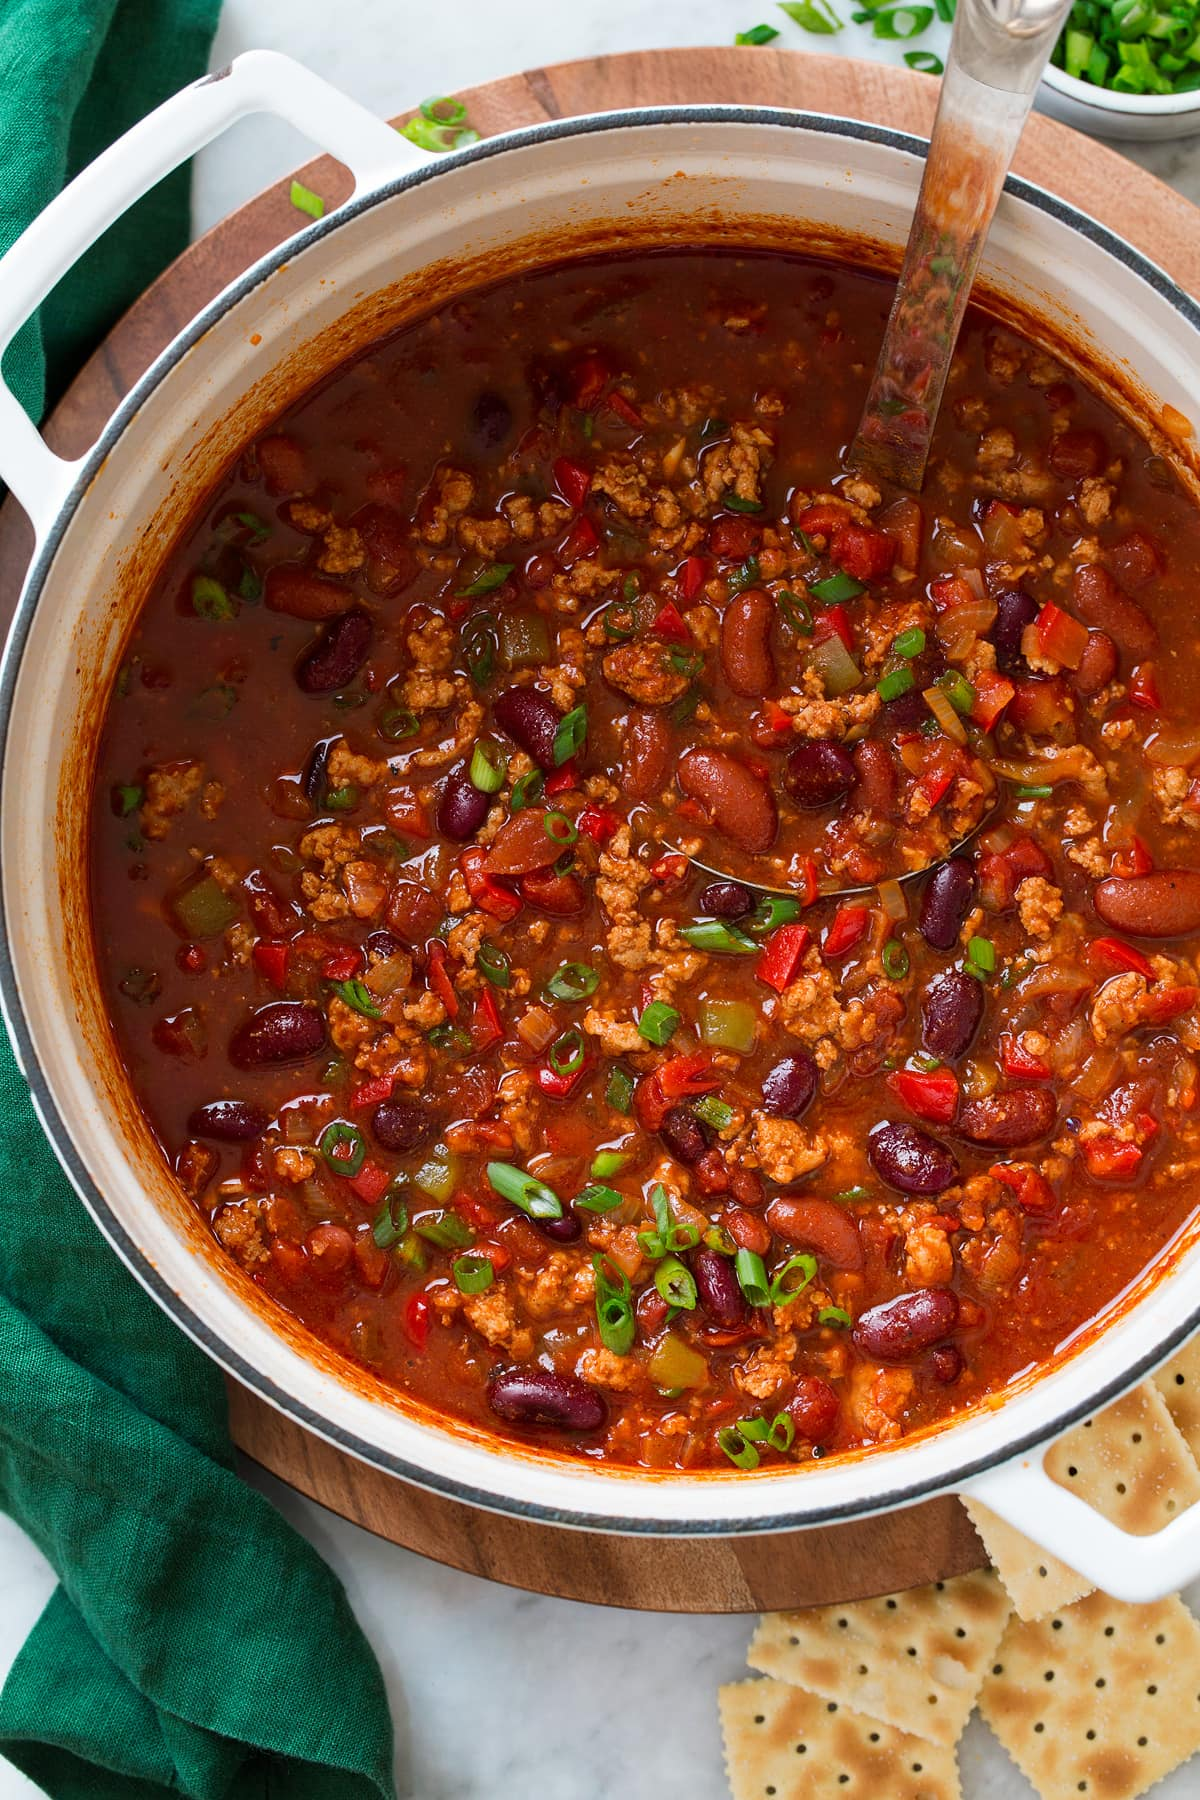 Overhead photo of turkey chili once finished in a pot.